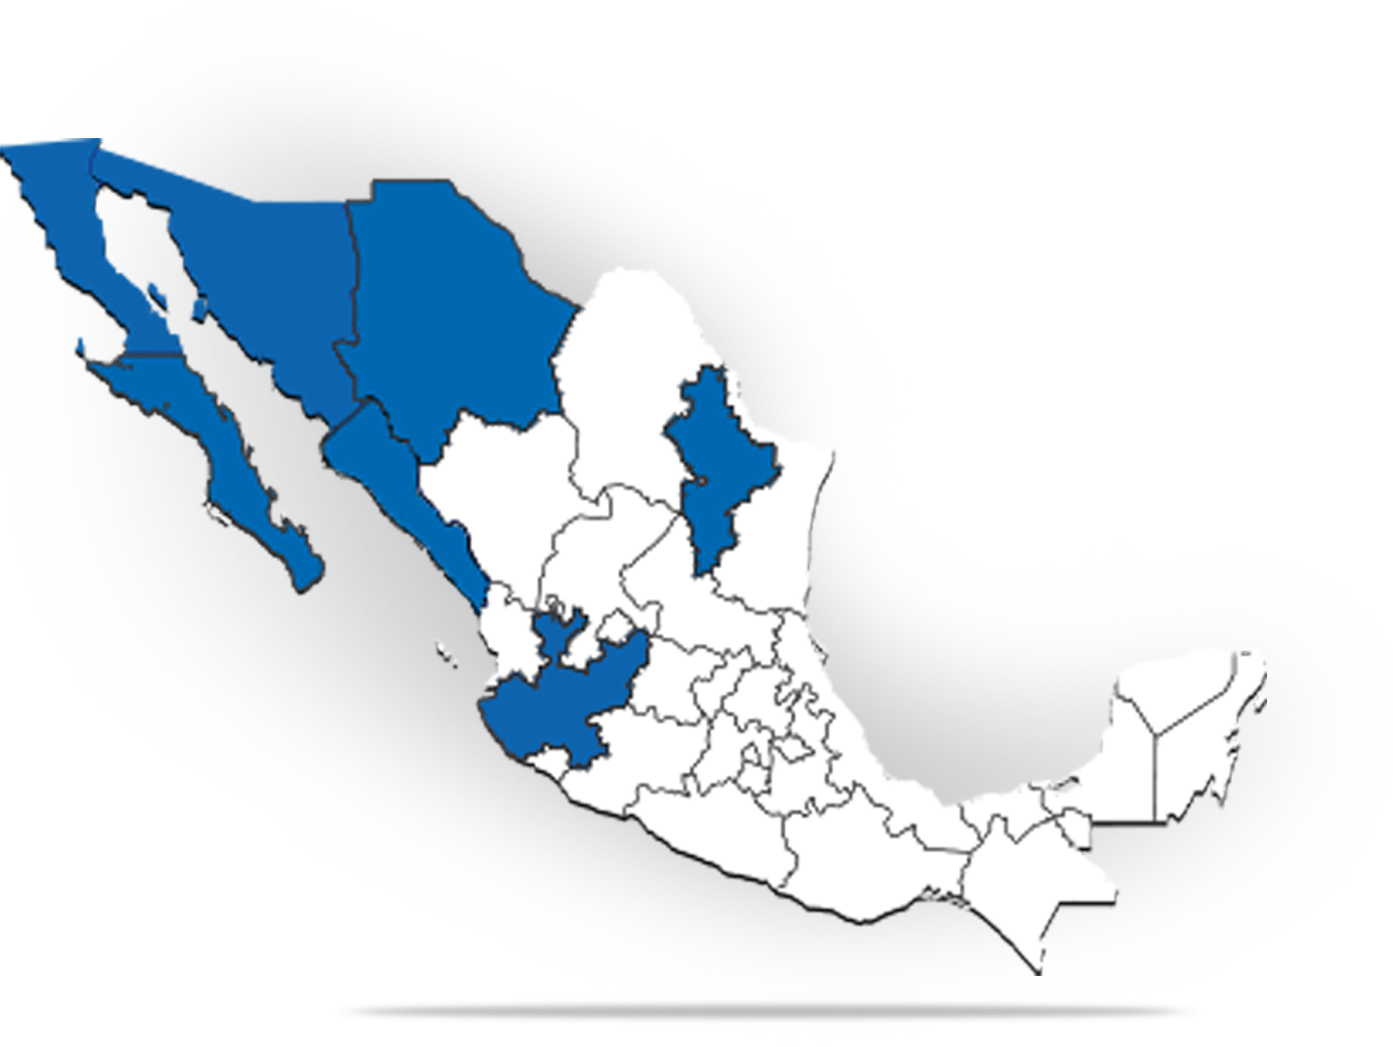 Map of Mexico with ARCO location states colored blue.